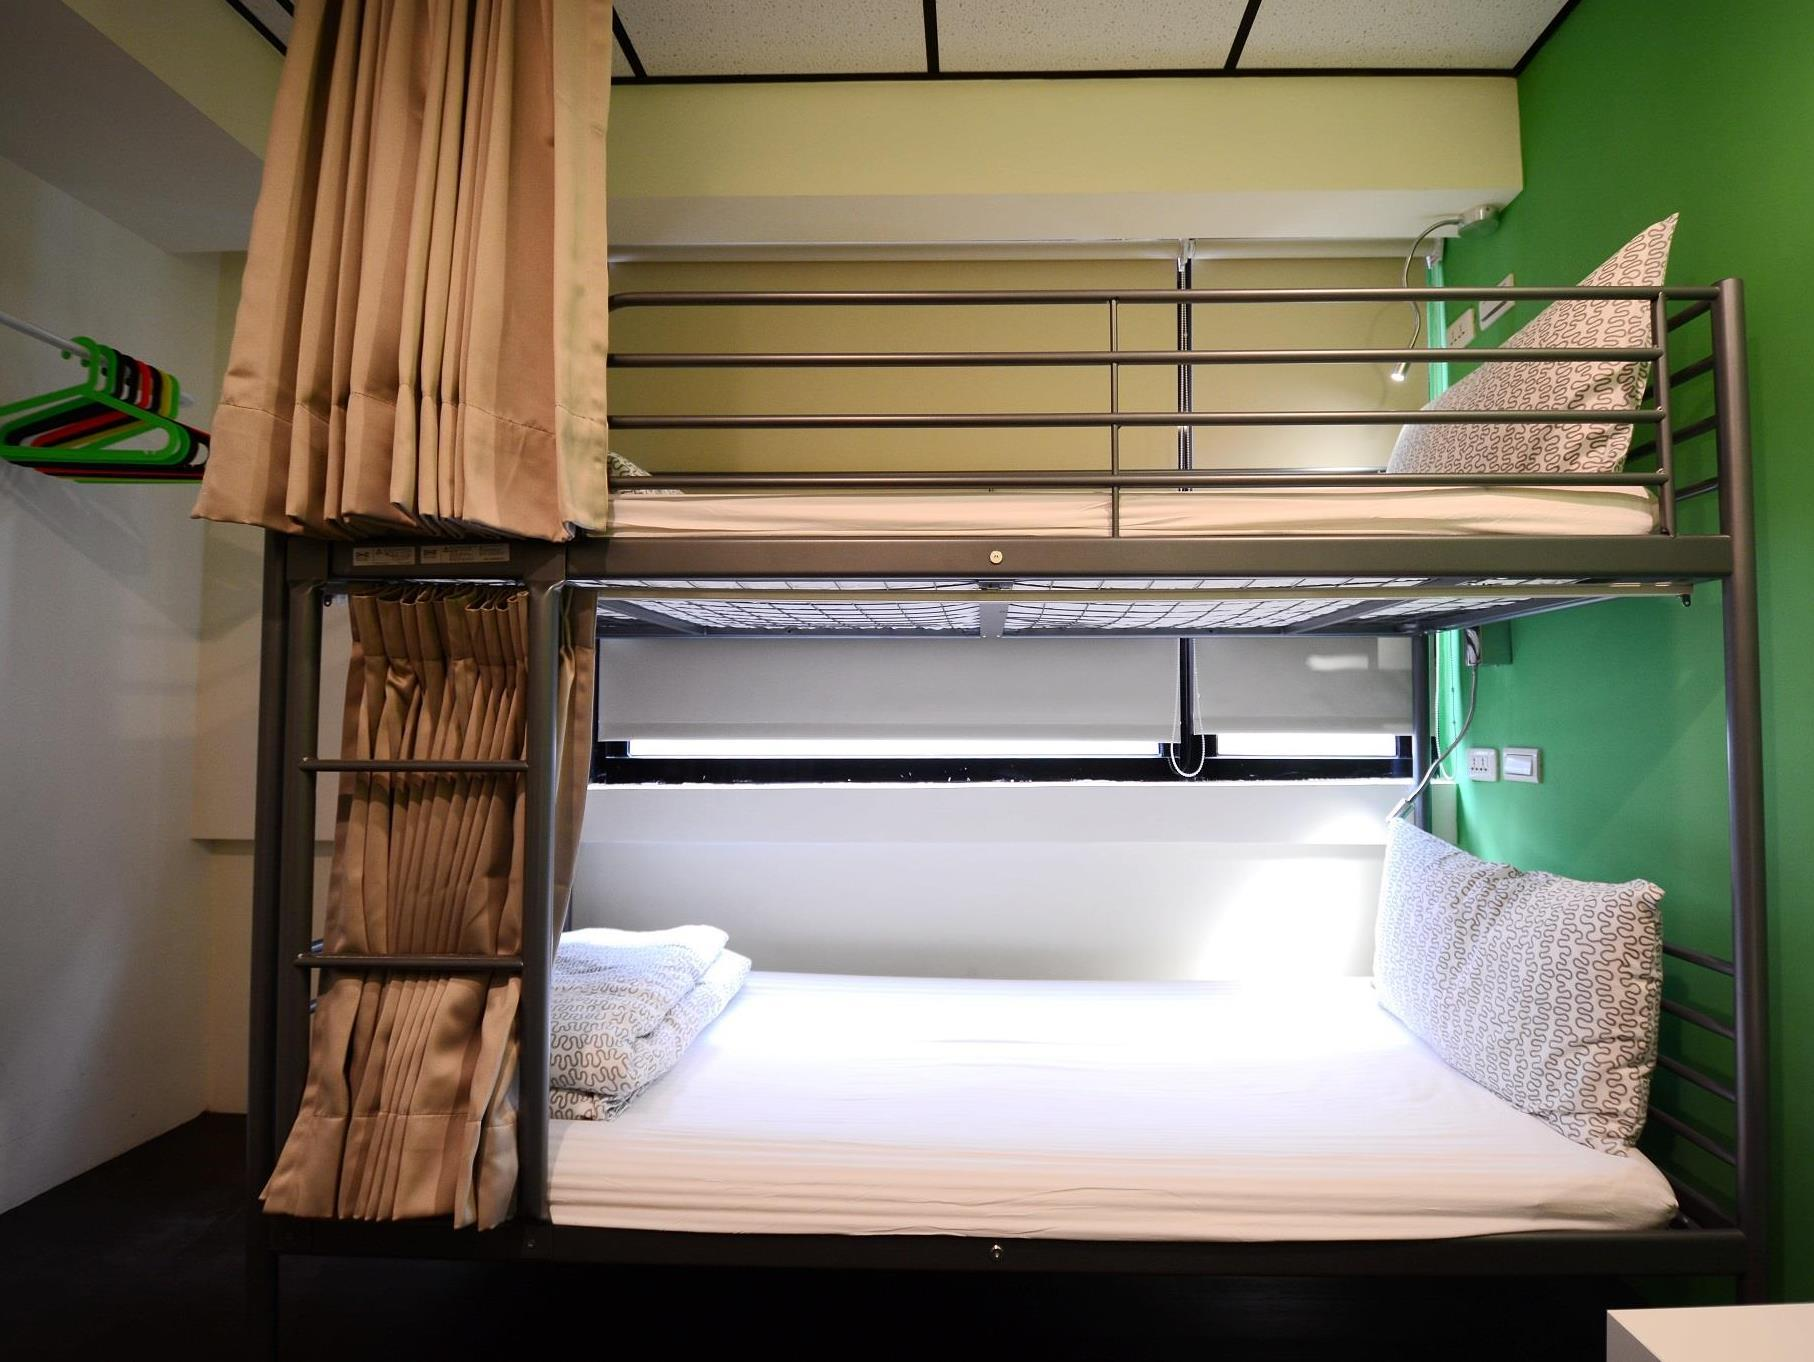 Bunk Bed - 2 people